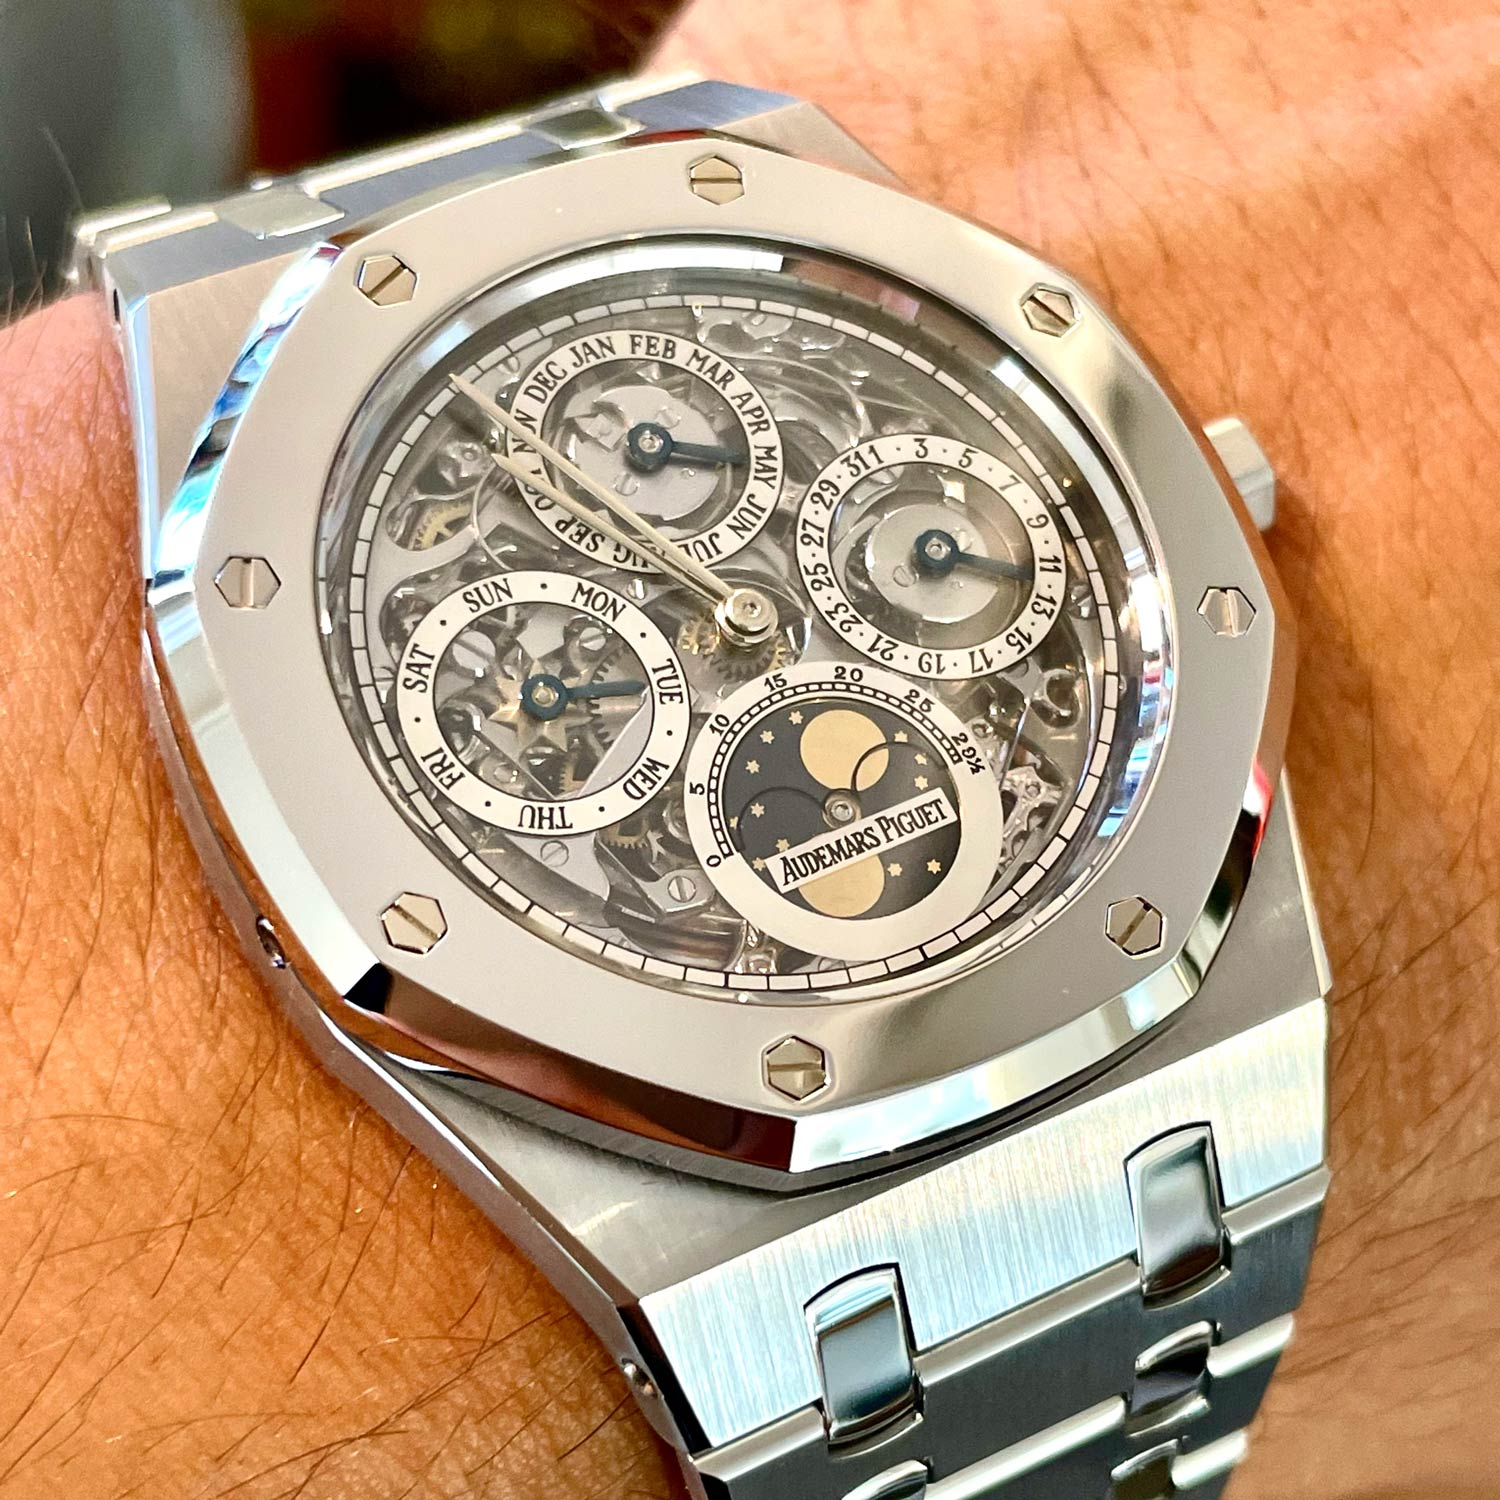 Lot 205 Audemars Piguet: Only 25 Pieces Made, Extremely Rare and Very Attractive Early Royal Oak Quantieme Perpetuel Automatic Wristwatch in Steel and Platinum, Reference 25636sp, With Skeletonized Dial, Box and Extract from The Archives